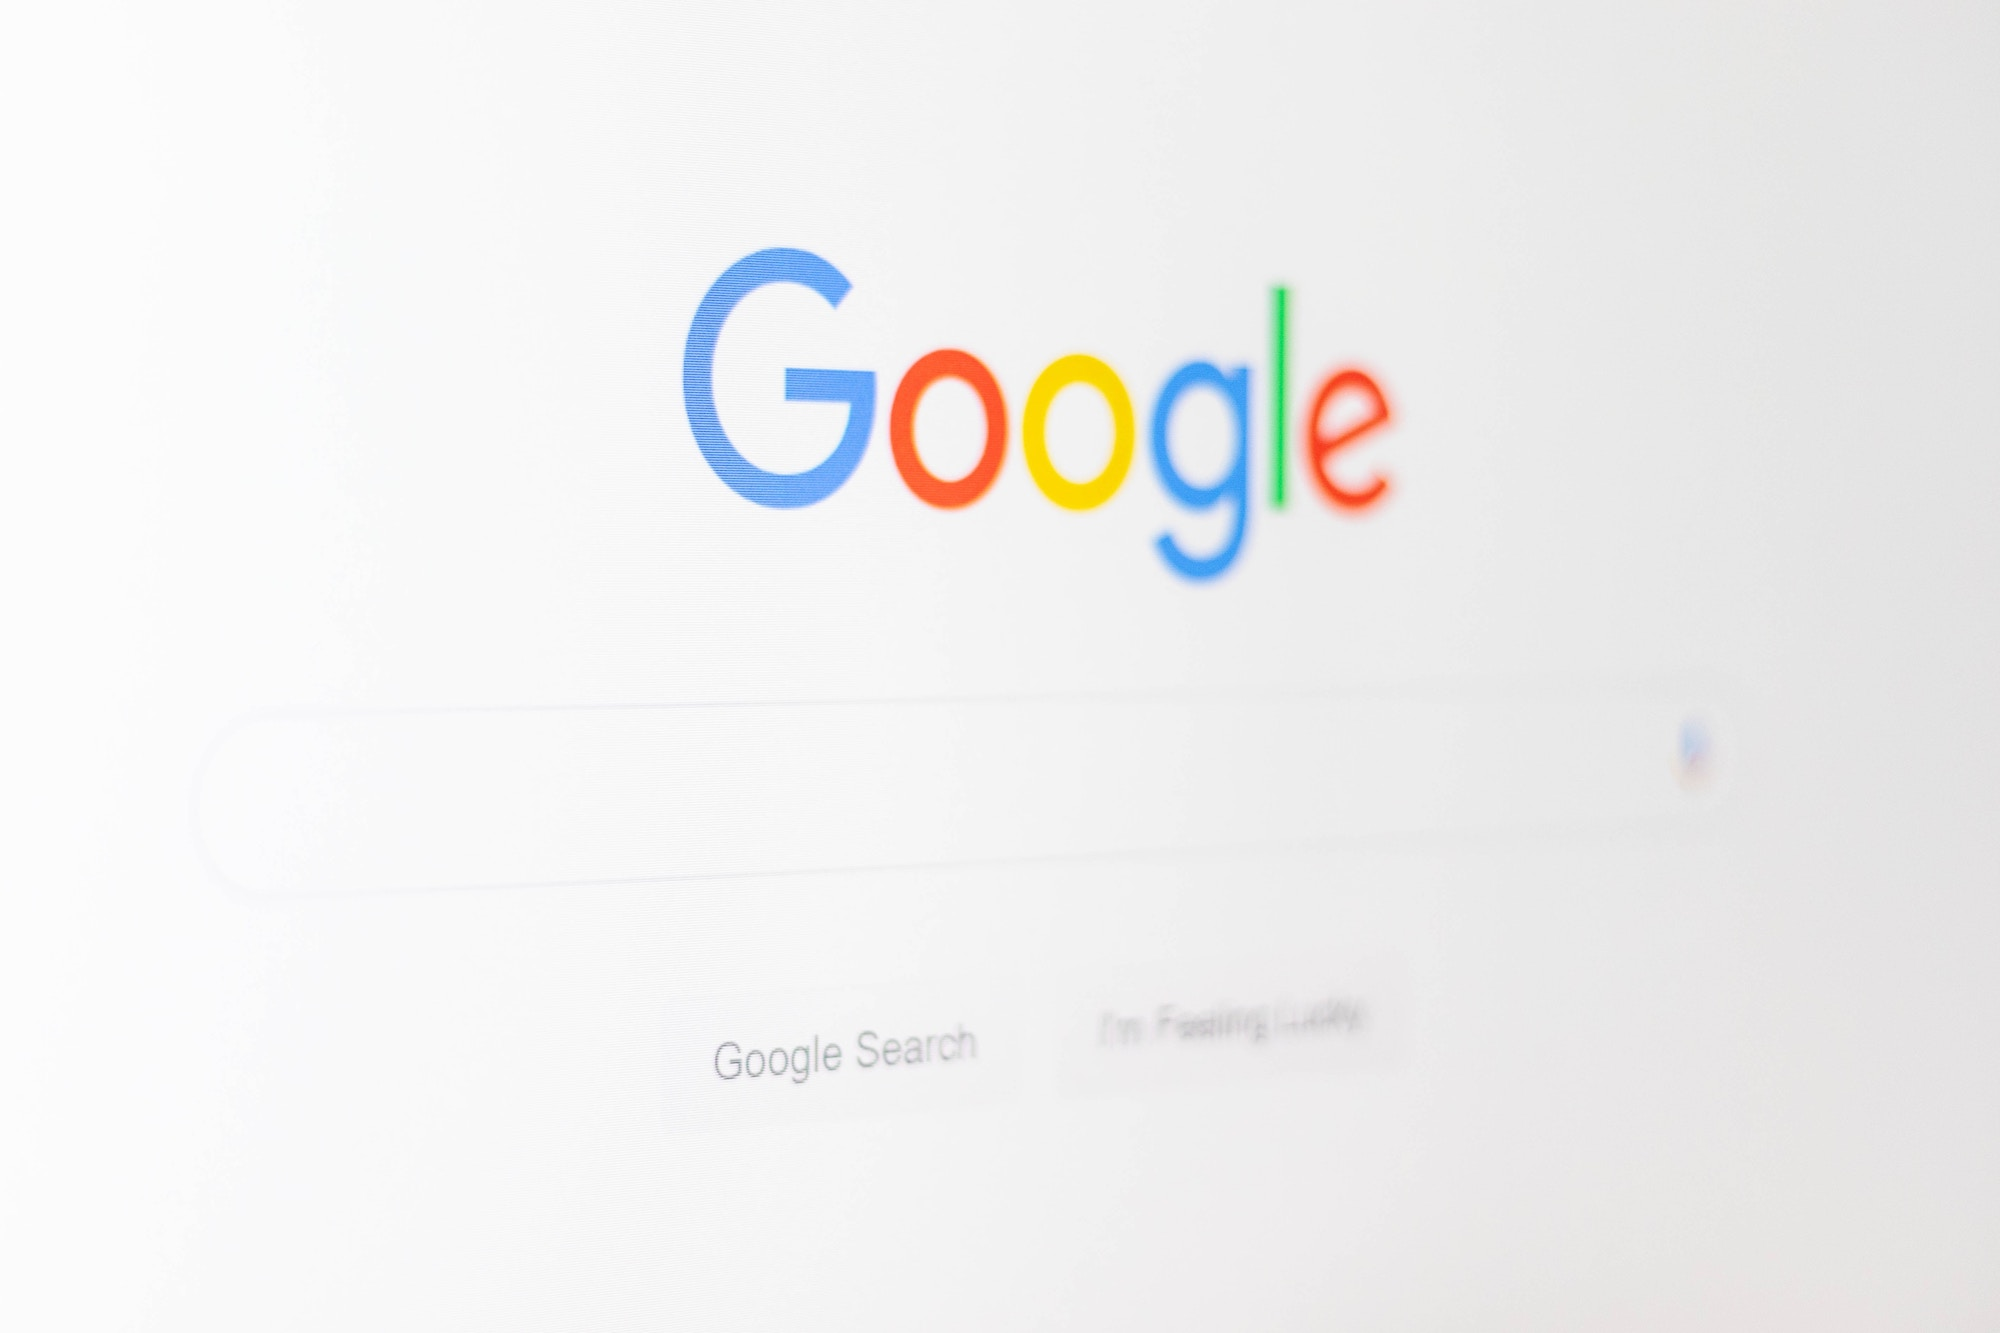 How To Let Google Know Your Website Exists